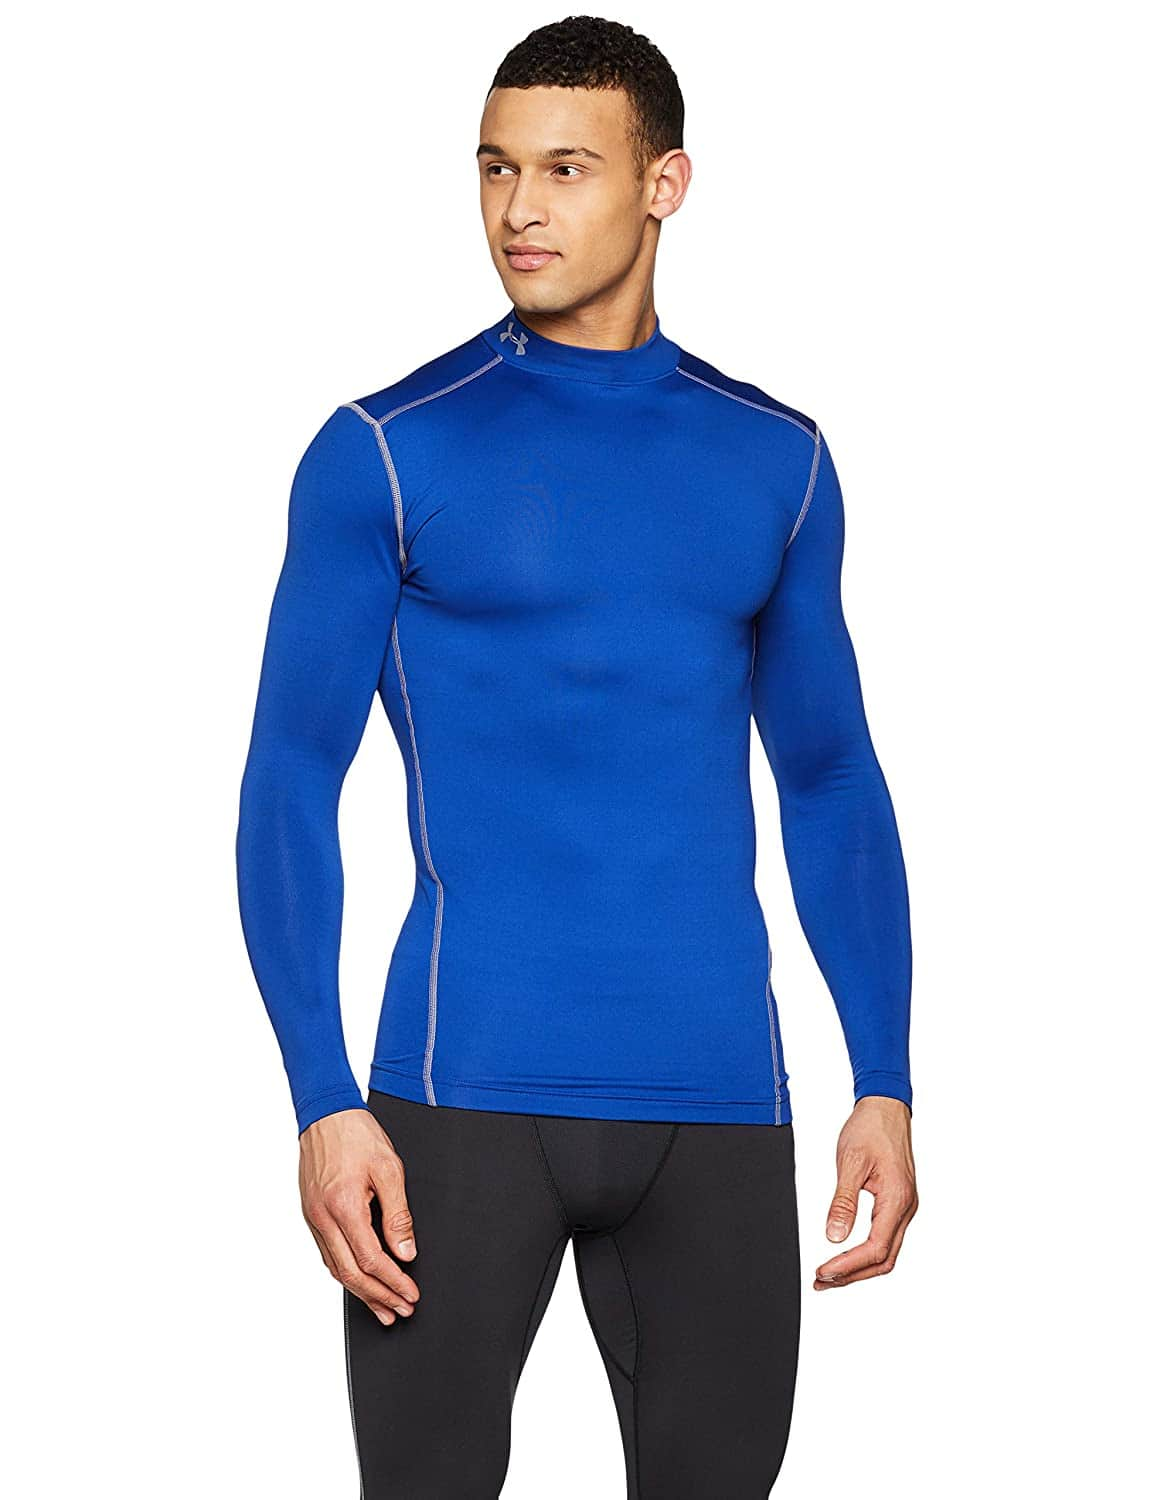 Under Armour Mens Compression Long Sleeve T-Shirt XXL $9.28